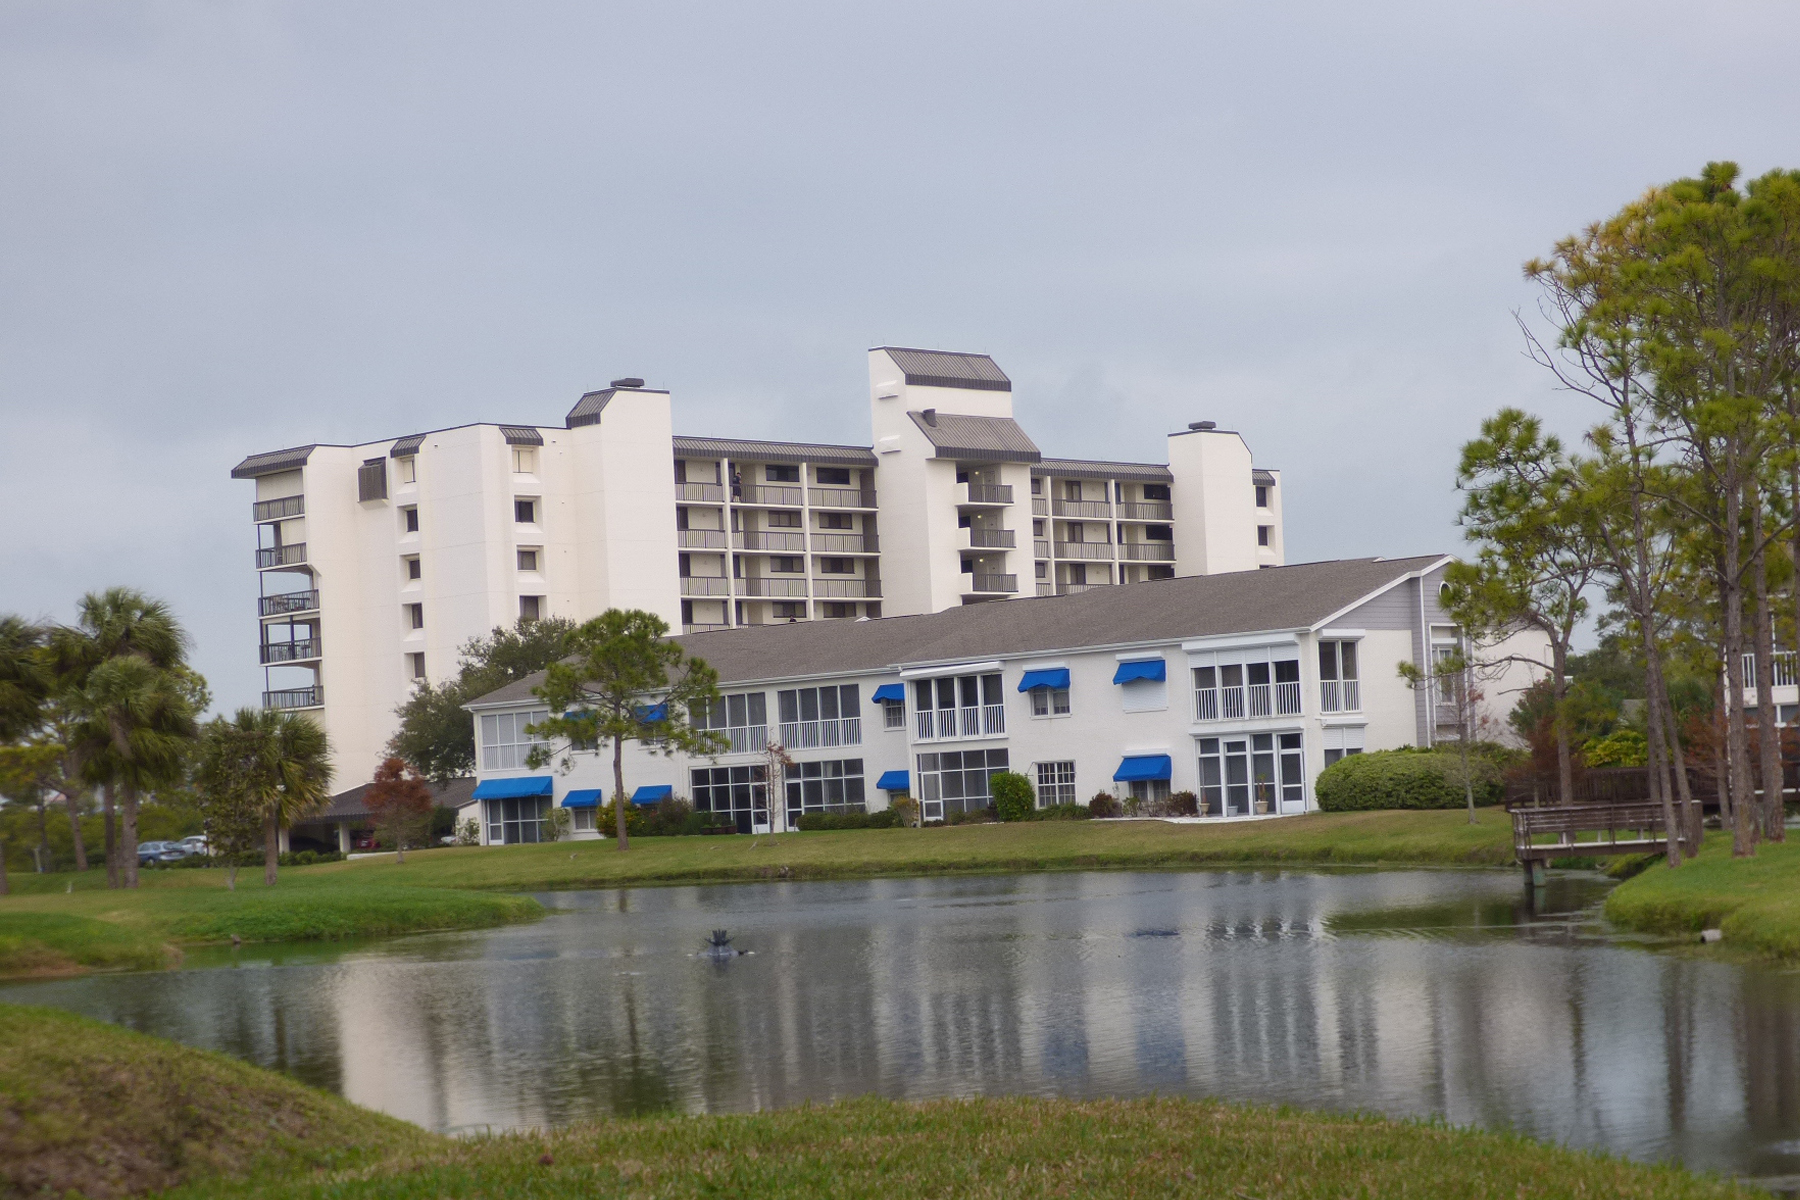 2 mid-rise buildings, pond, villas